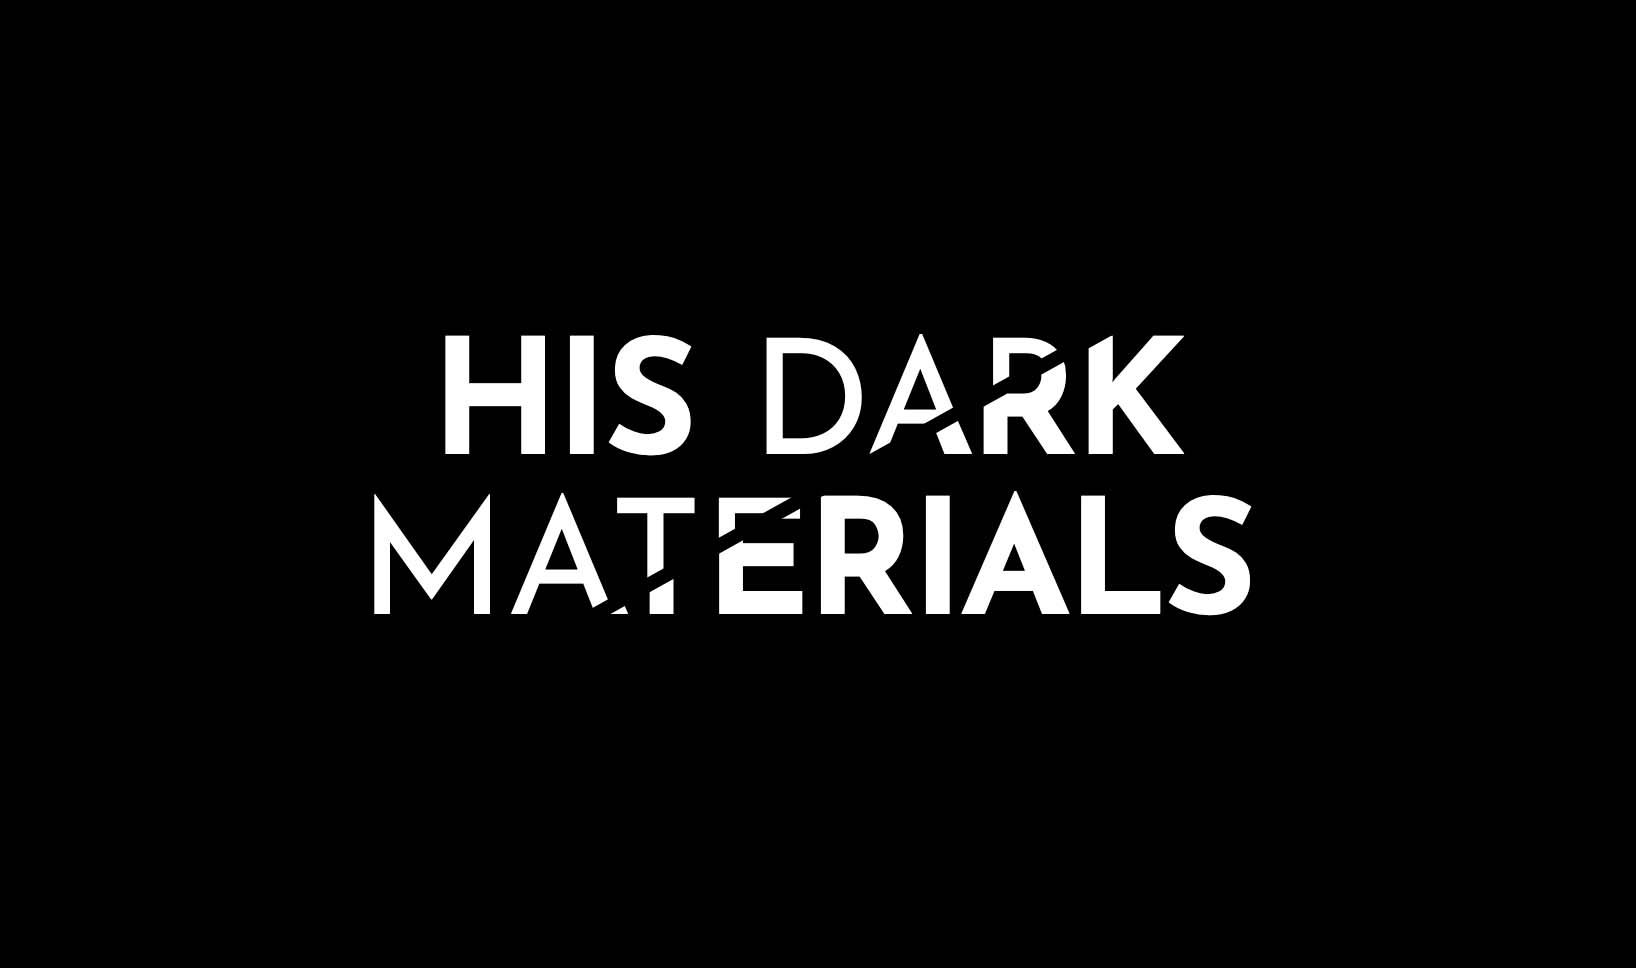 His Dark Materials logo as created in CSS